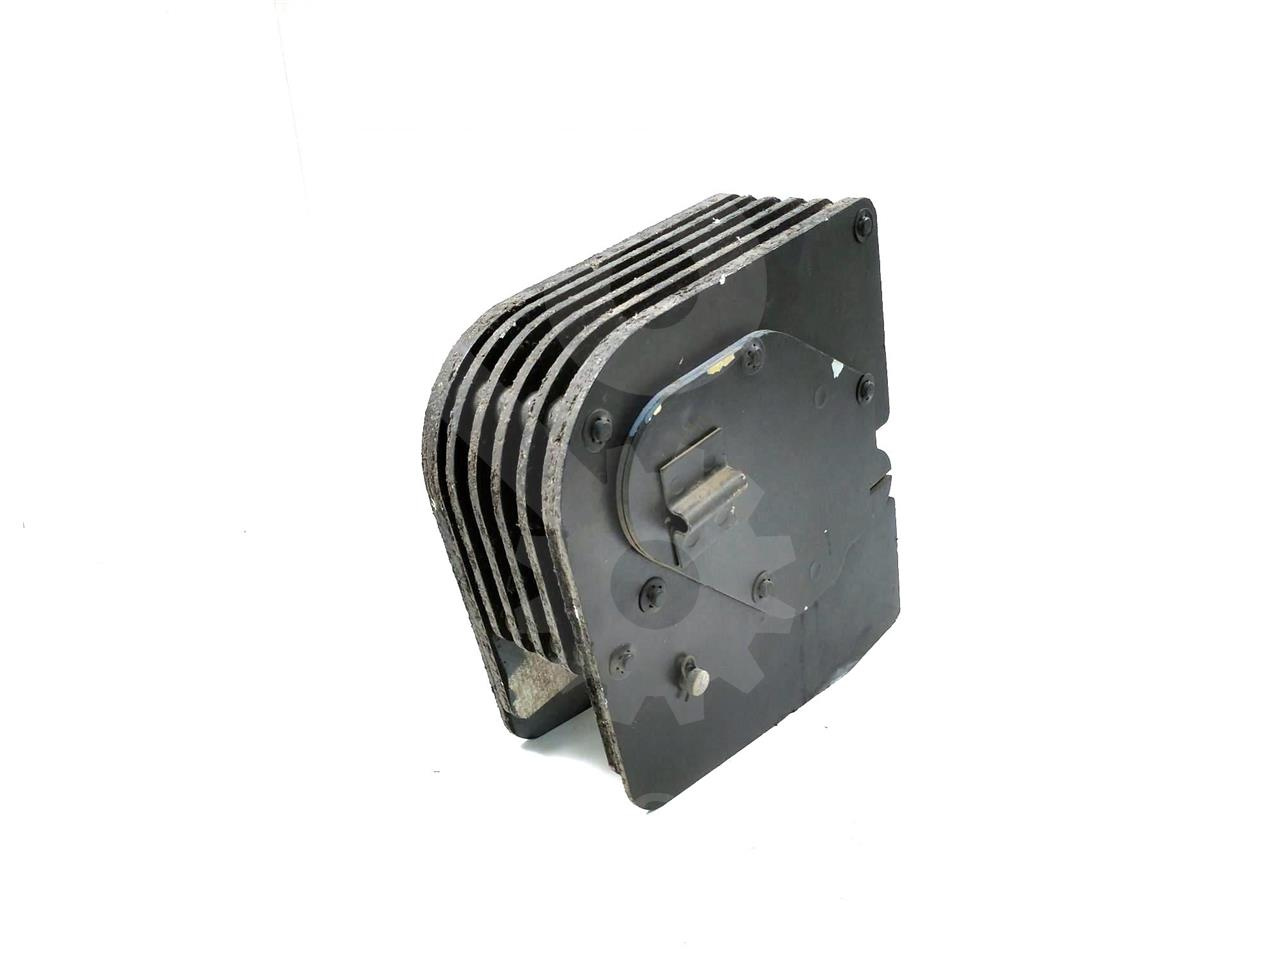 ITE ARC CHUTE ASSEMBLY FOR KCG-1600